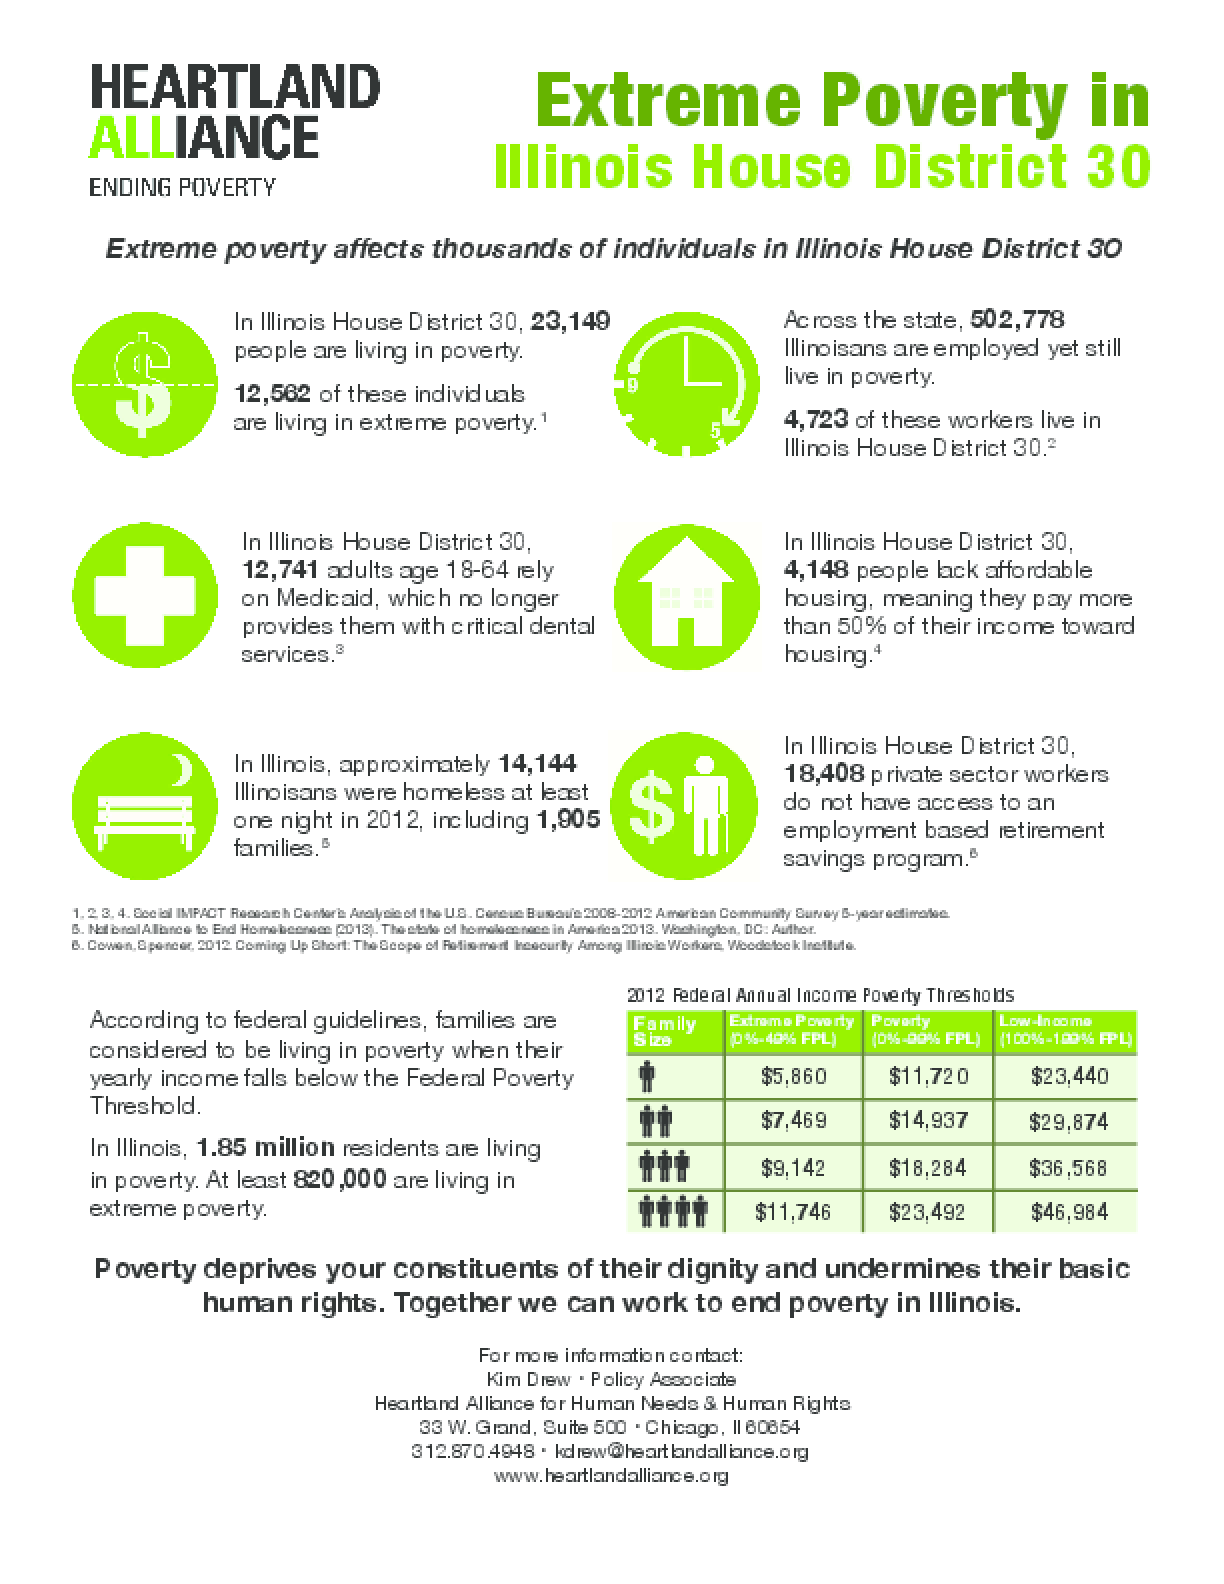 Poverty Fact Sheets for Illinois House District 30